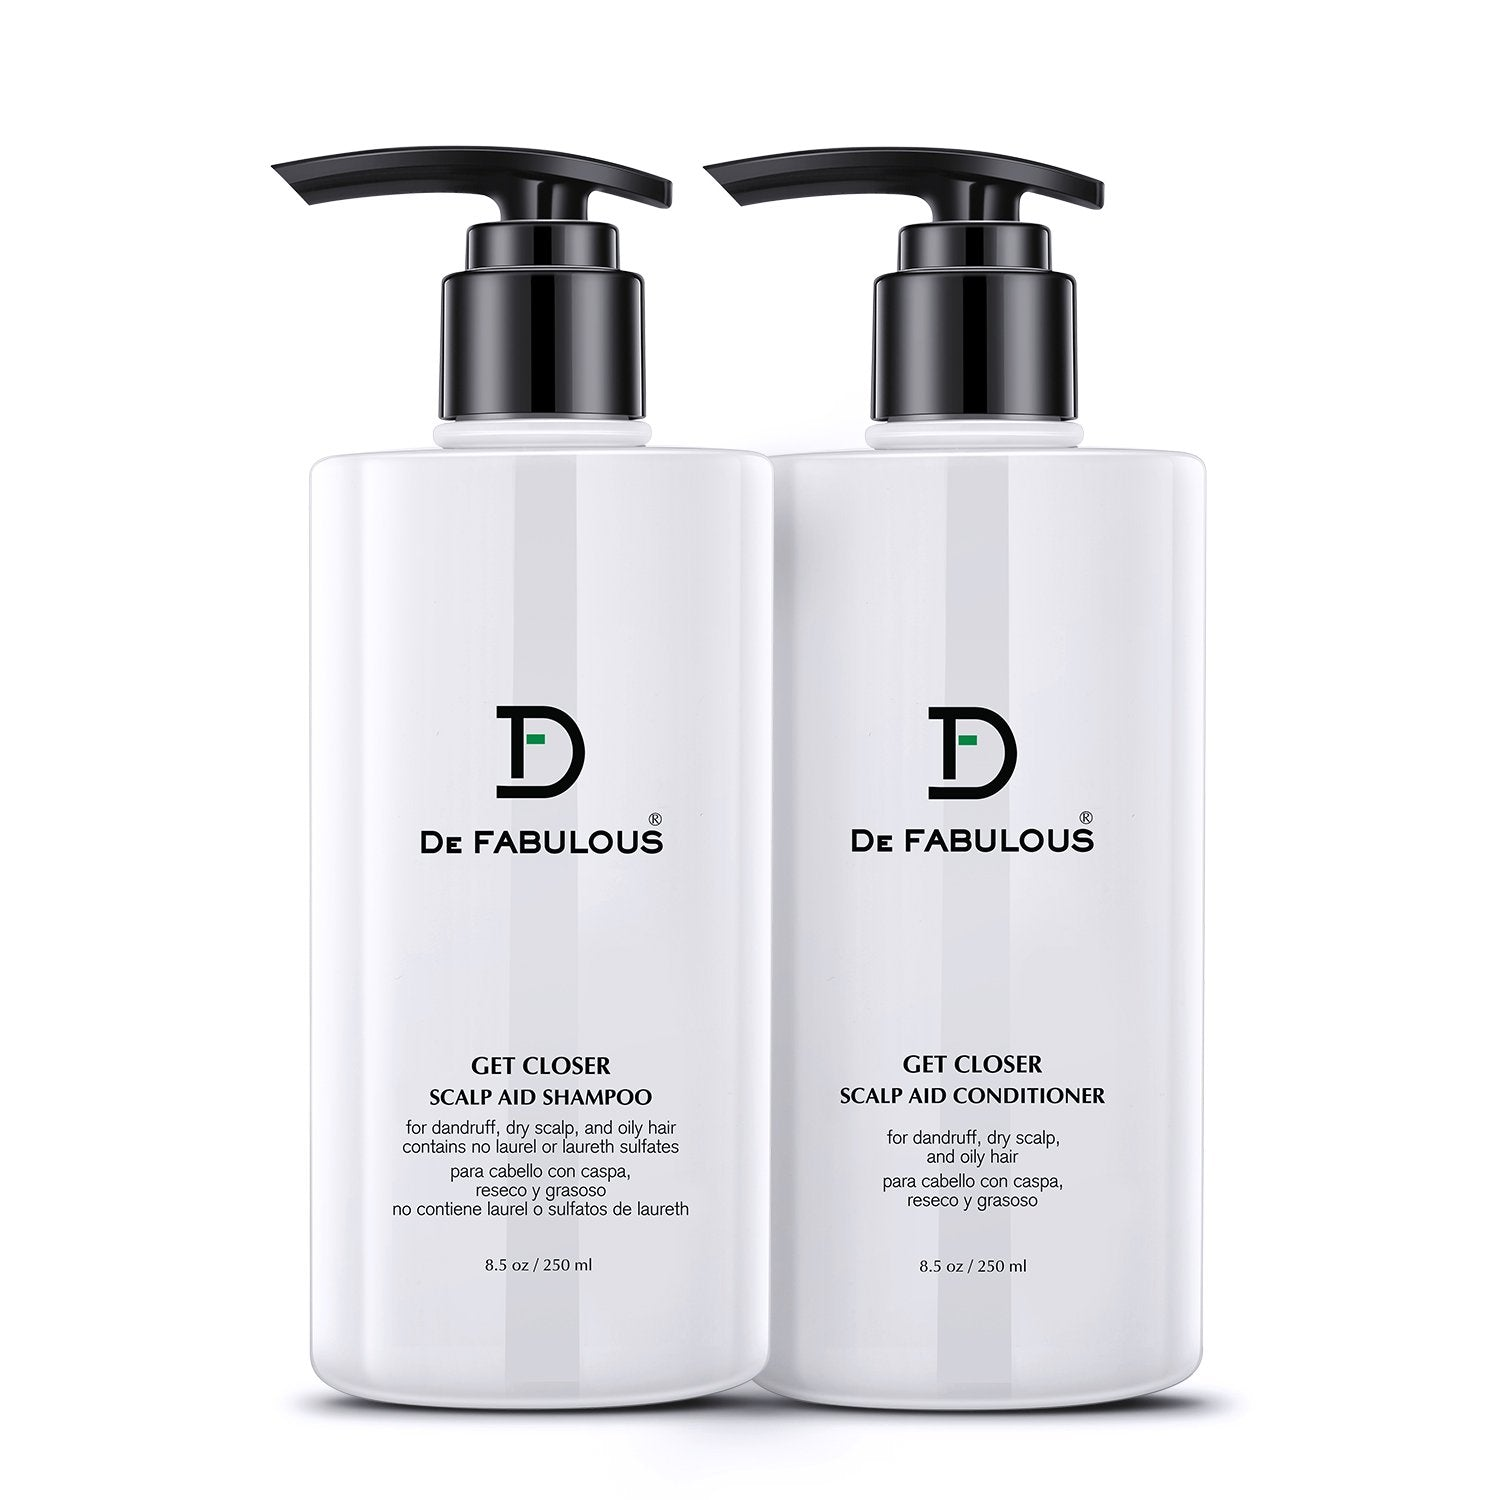 De Fabulous Get Closer Scalp Aid Shampoo & Conditioner 250ml Each (Pack of 2)